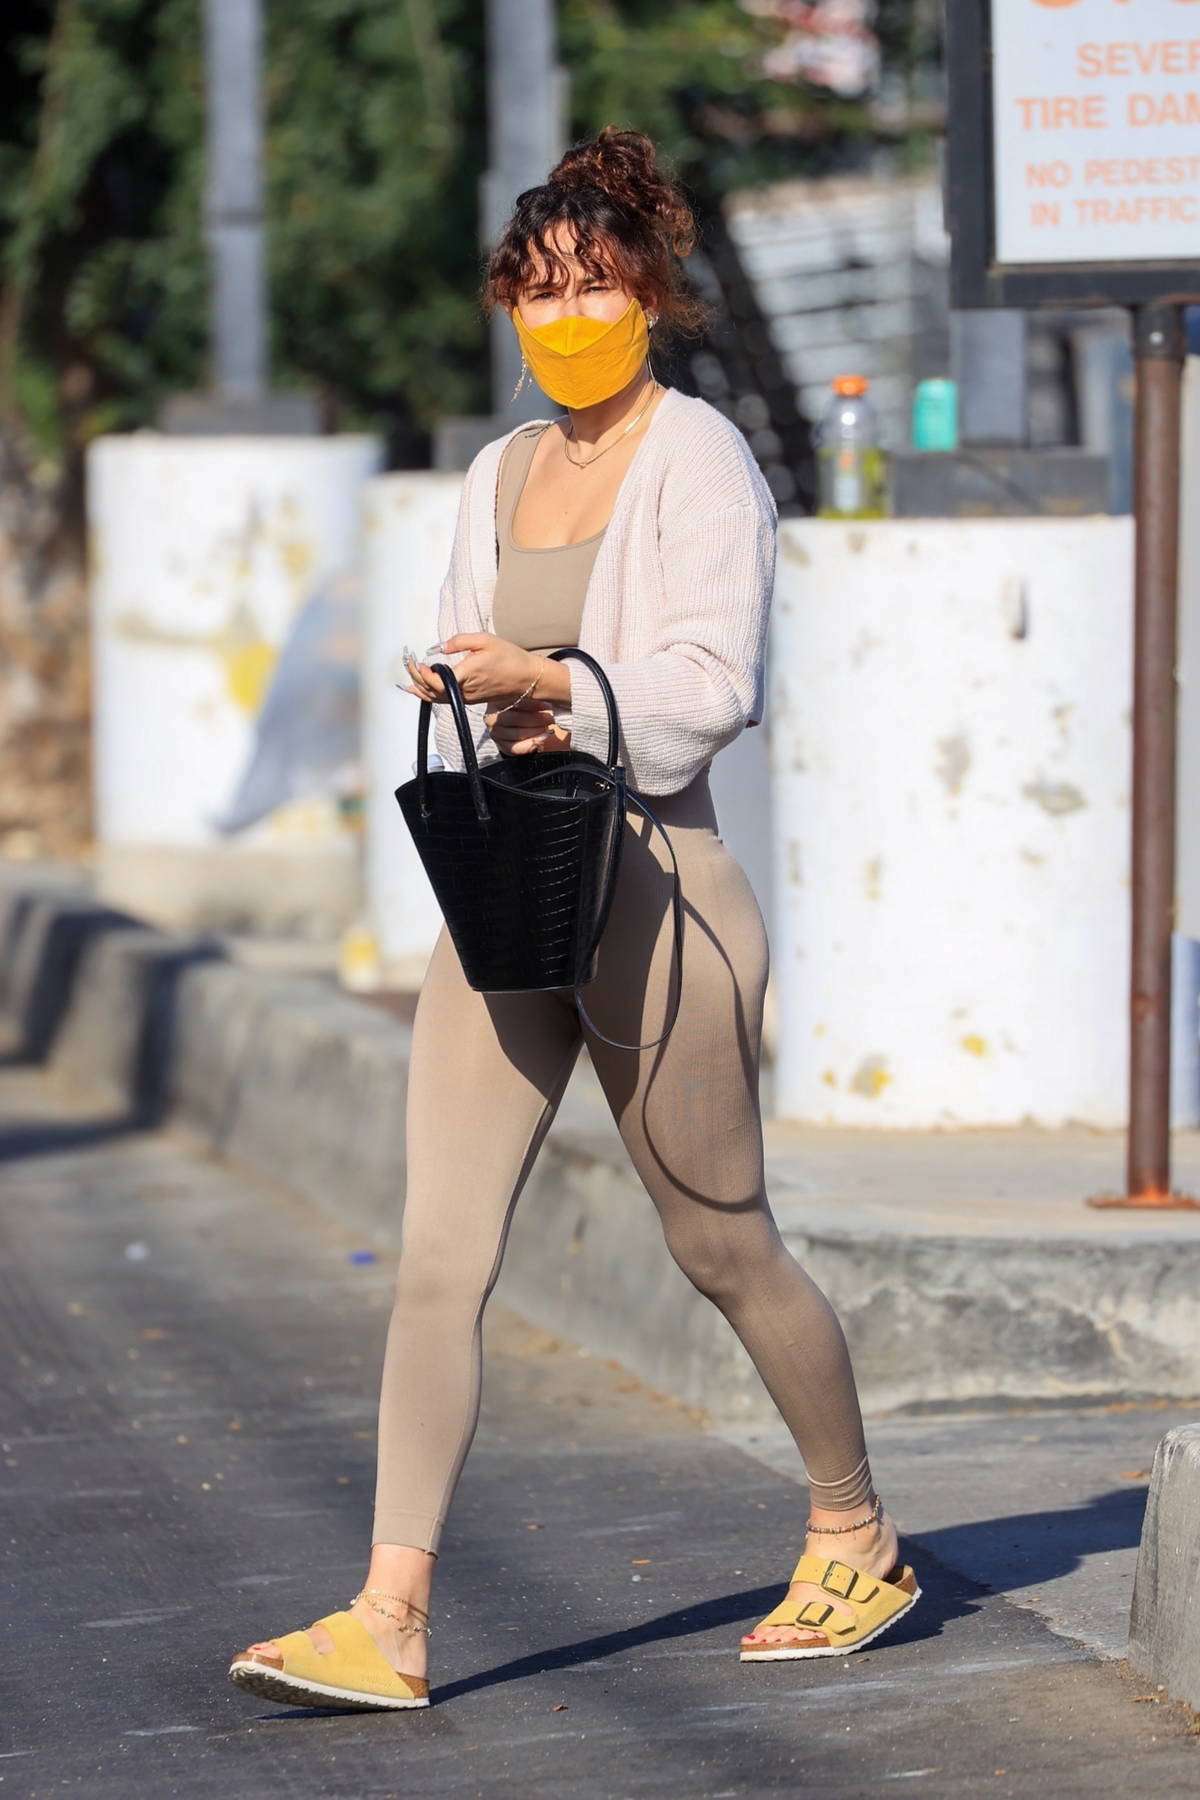 Rumer Willis heads to a Pilates class wearing beige workout top and matching leggings in Los Angeles